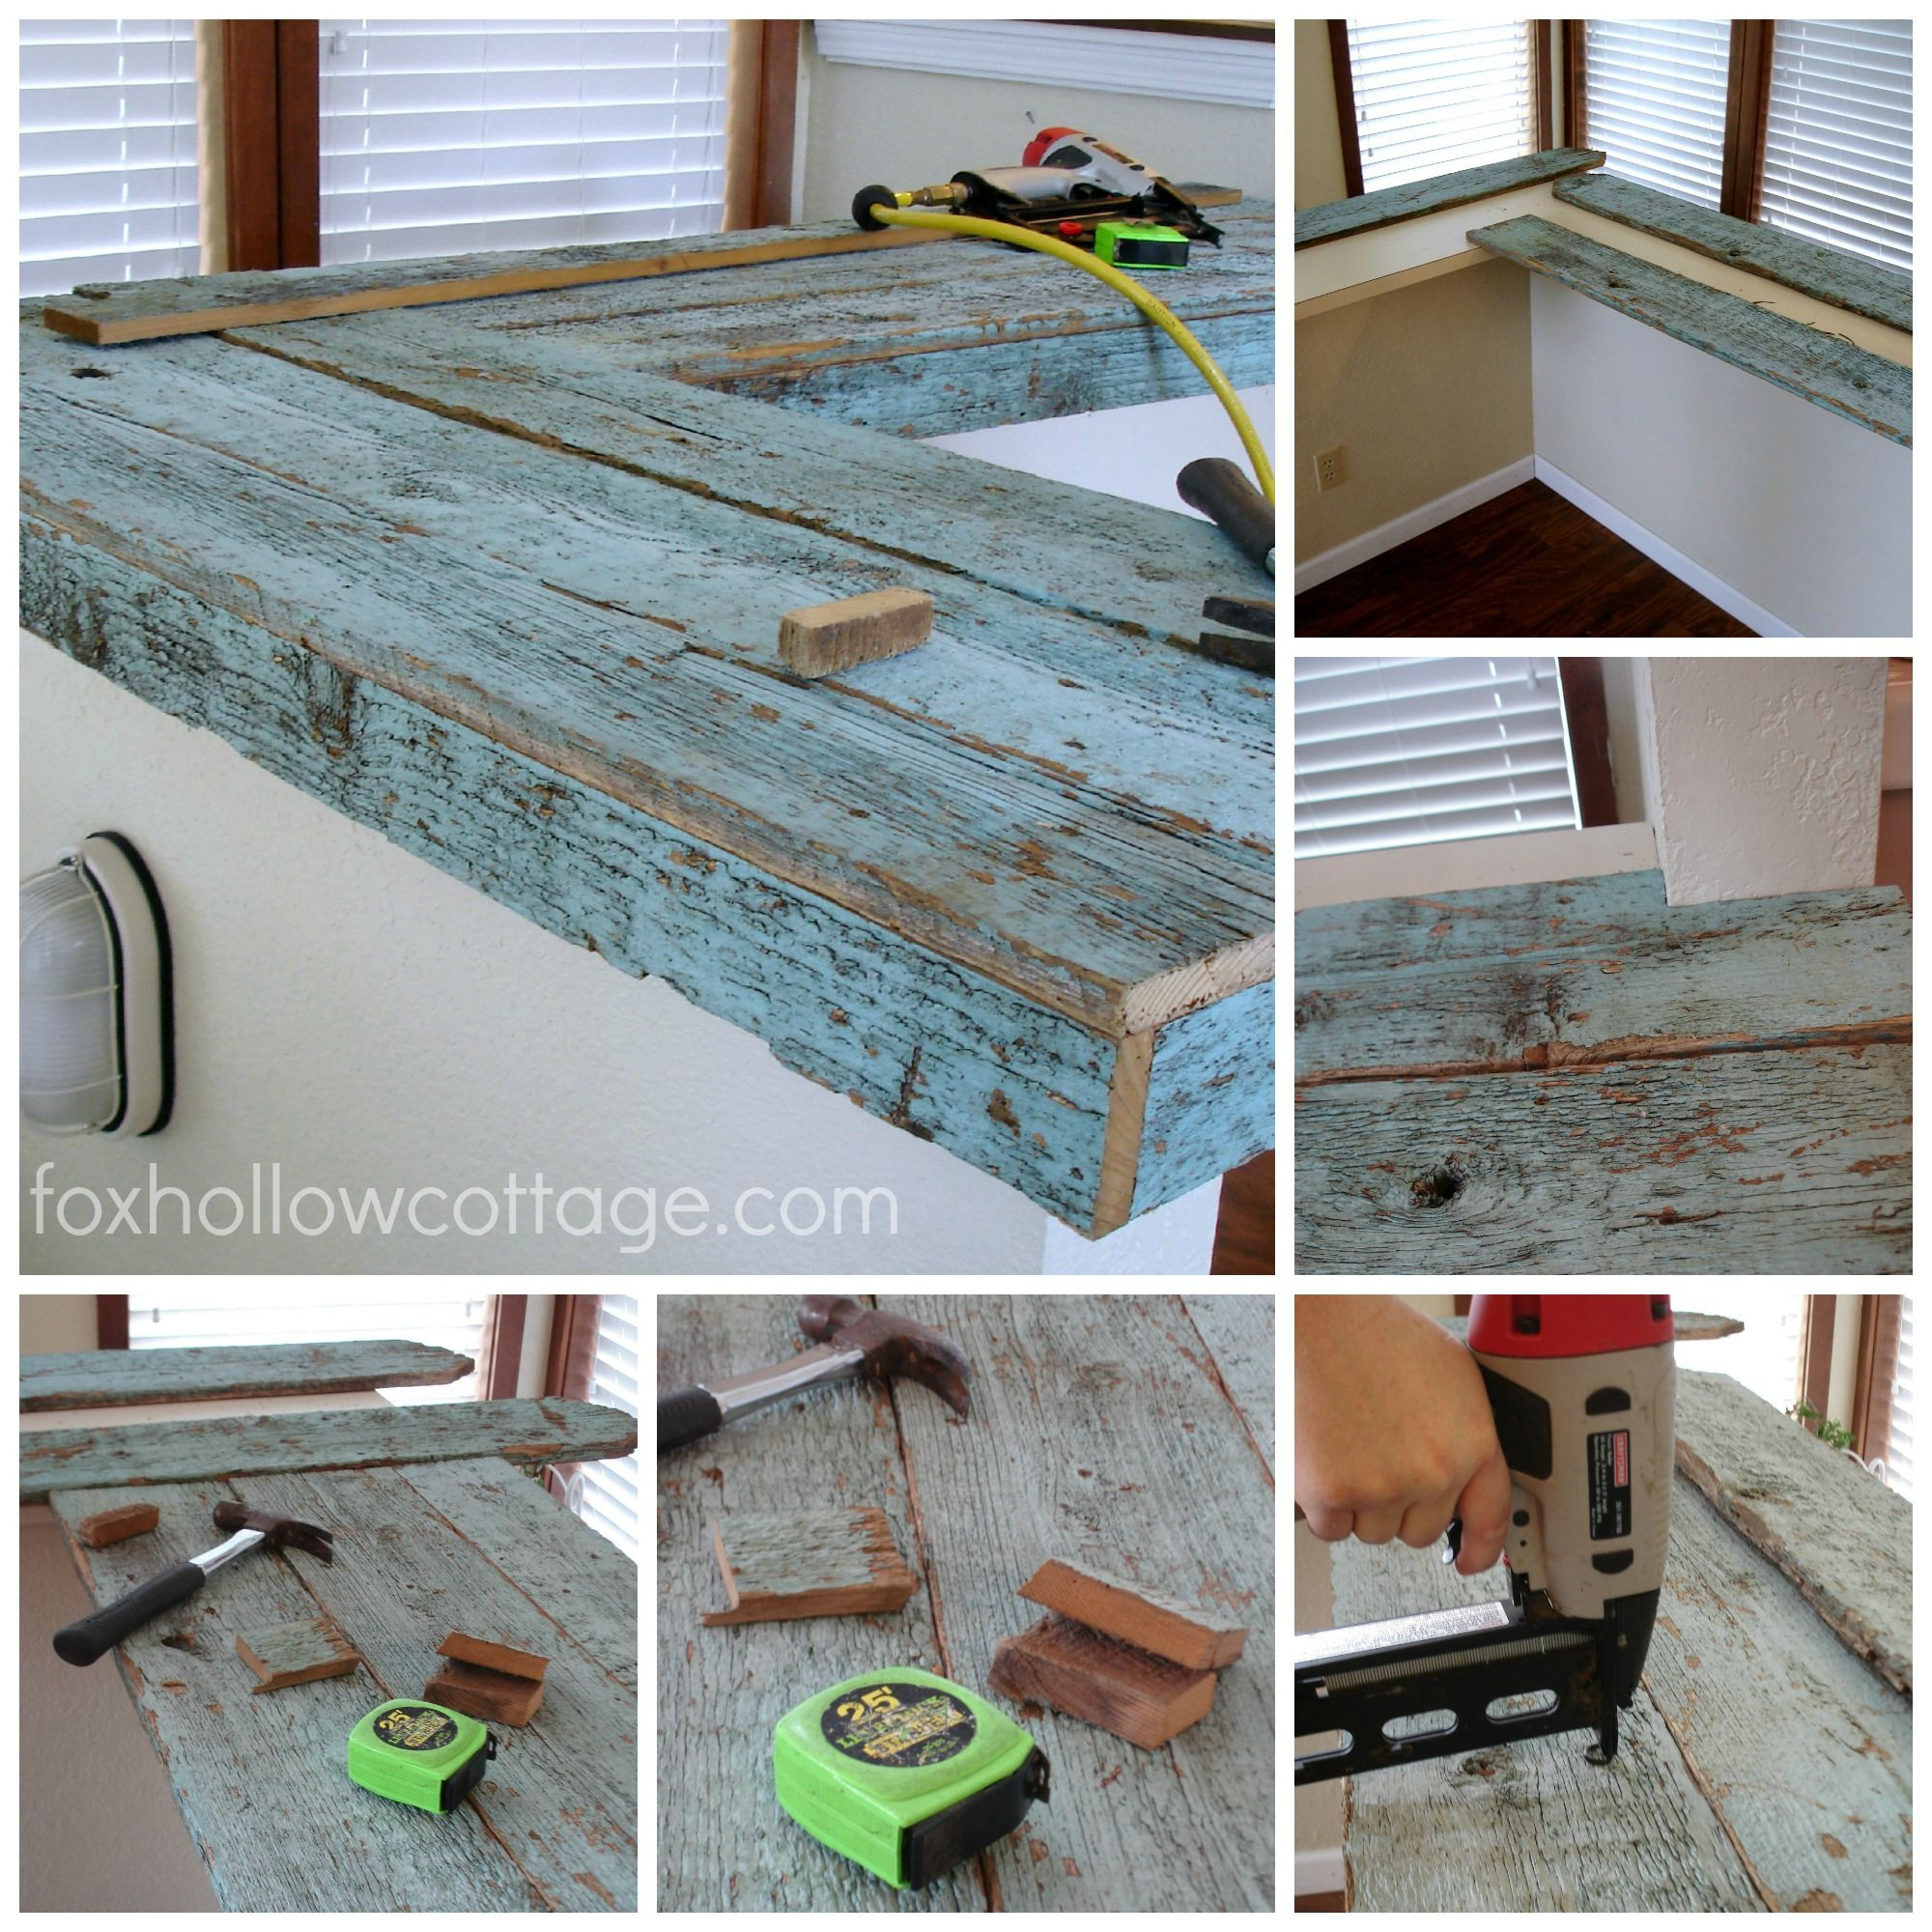 How To Make A Wood Fence Board Countertop | Pinterest | Fence boards ...